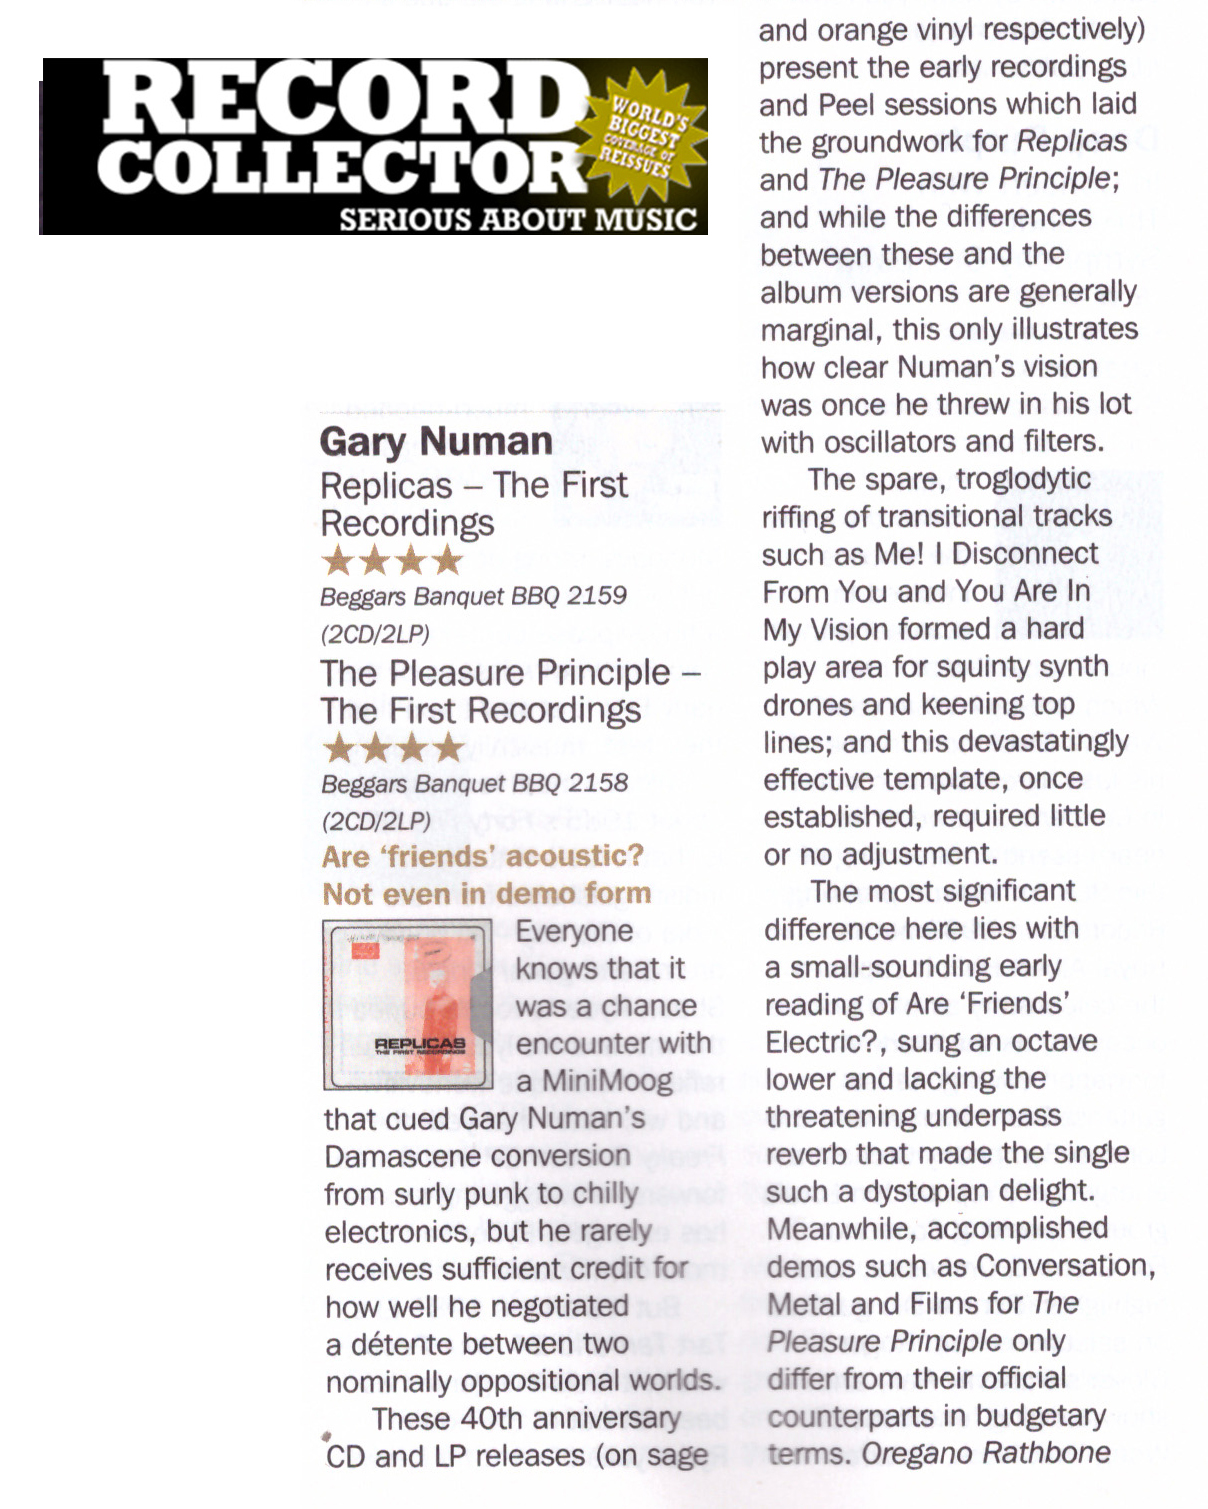 Record Collector reviews The First Recordings releases